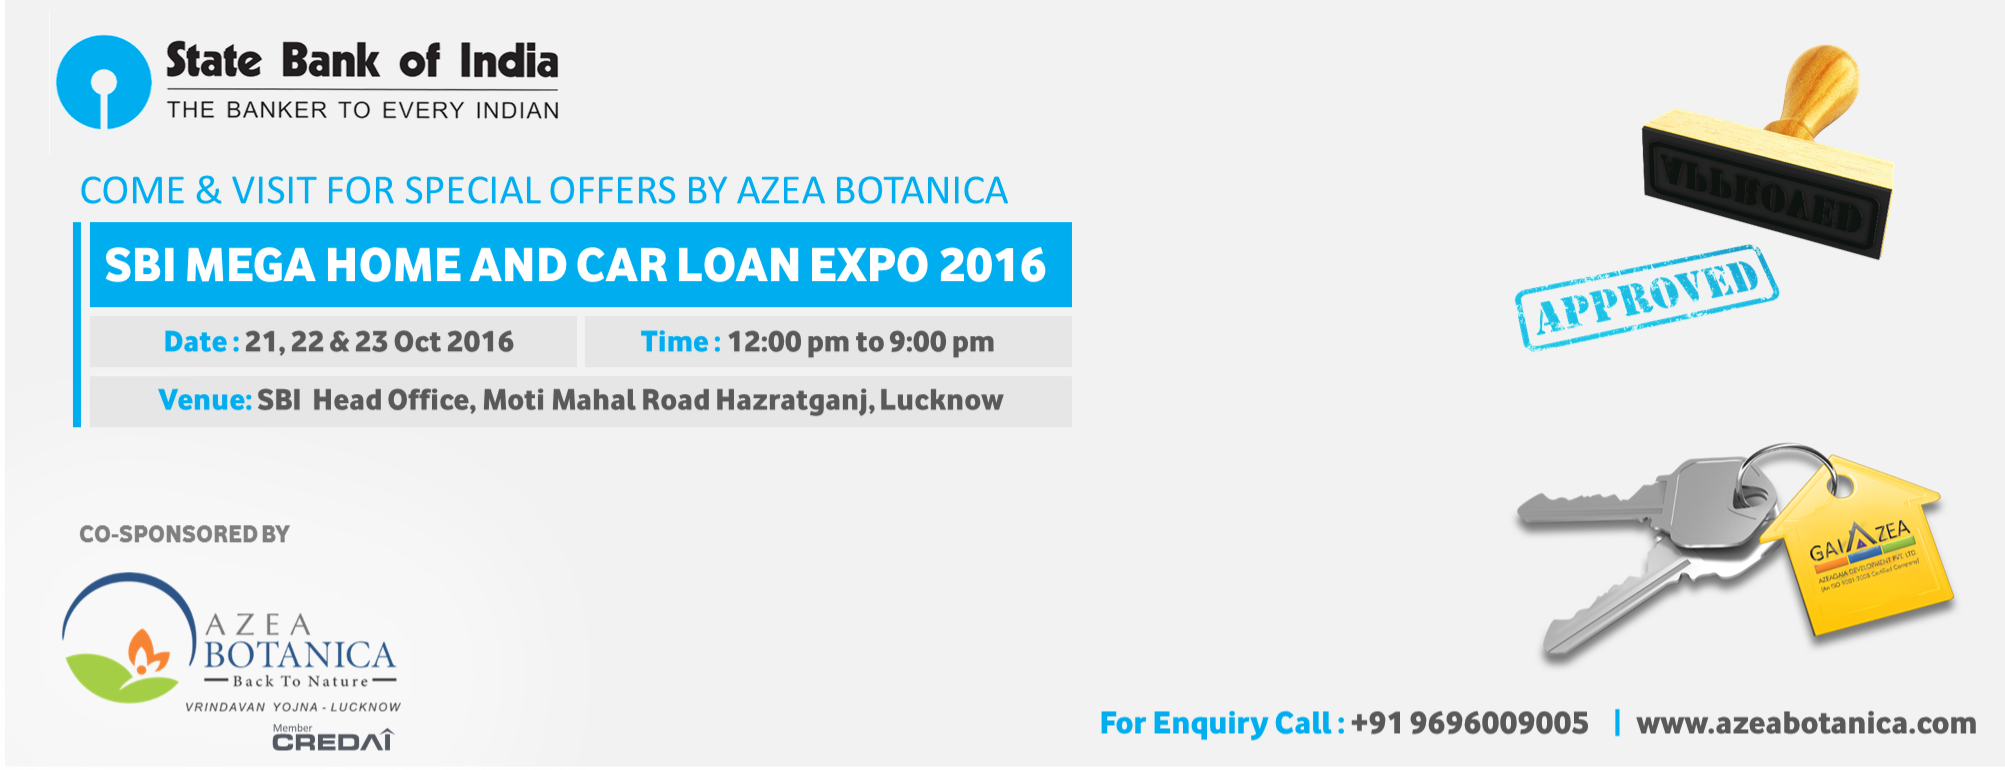 SBI Mega home loan and car loan expo 2016 is being organized at SBI head office located at Moti Mahal Rd, Hazratganj, Lucknow on 21st, 22nd & 23rd October ...